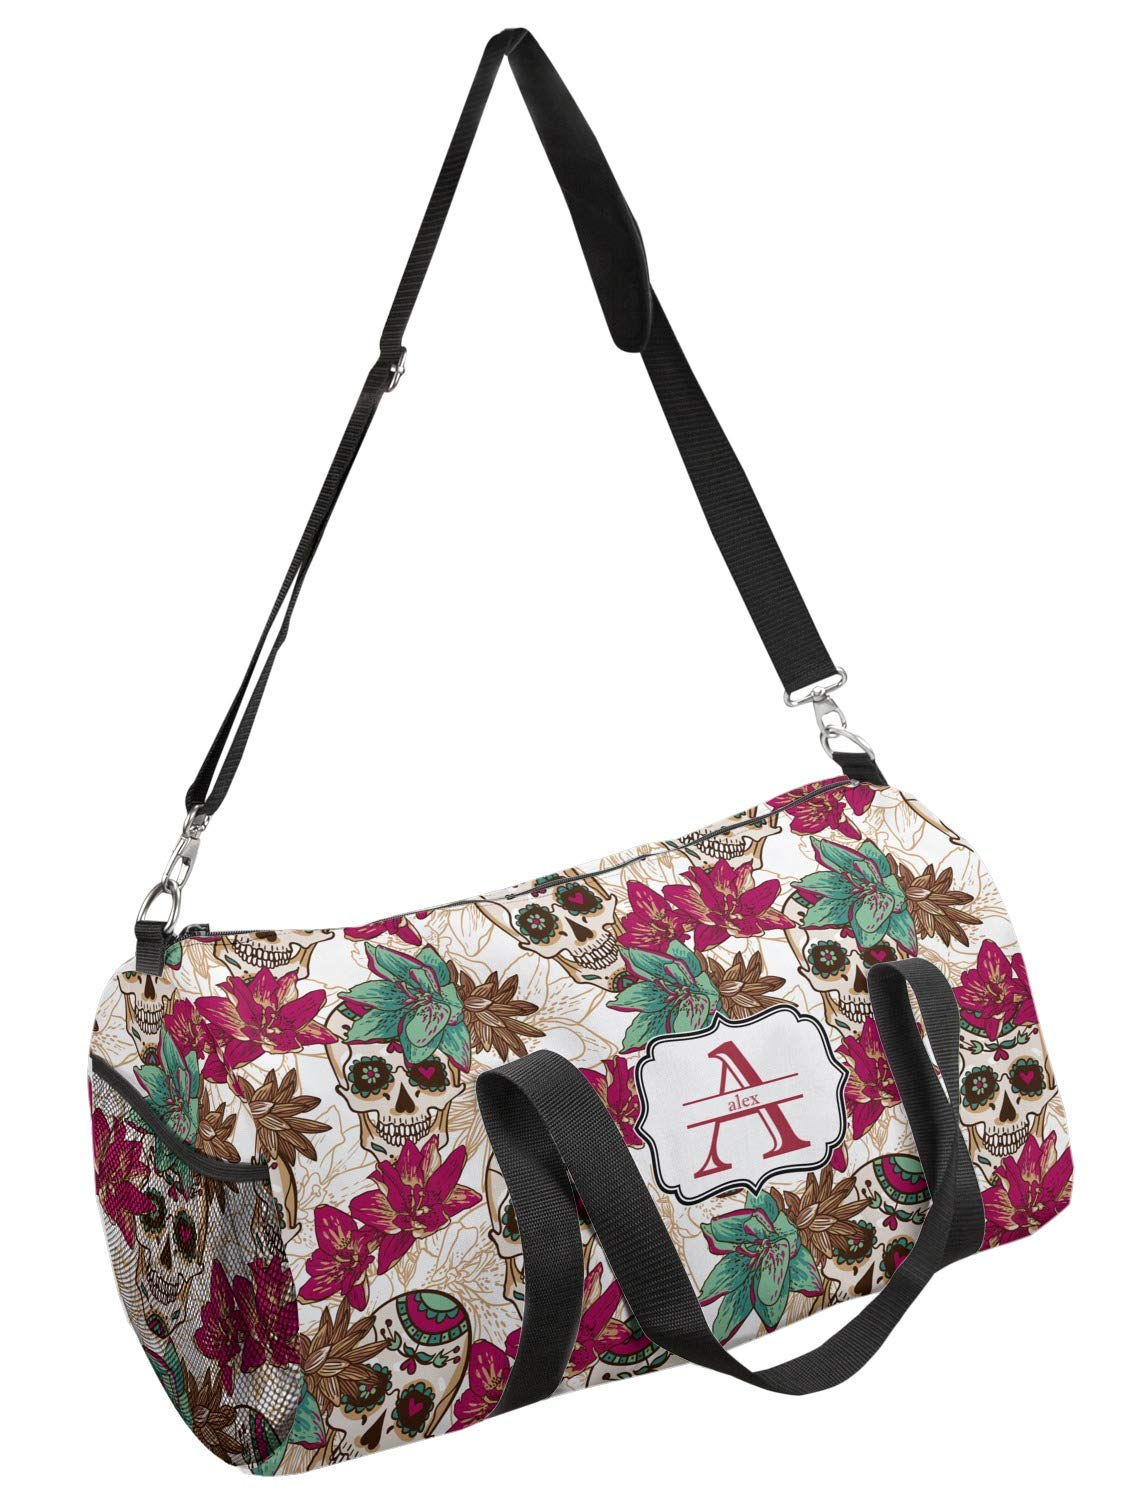 Personalized YouCustomizeIt Sugar Skulls /& Flowers Duffel Bag Multiple Sizes